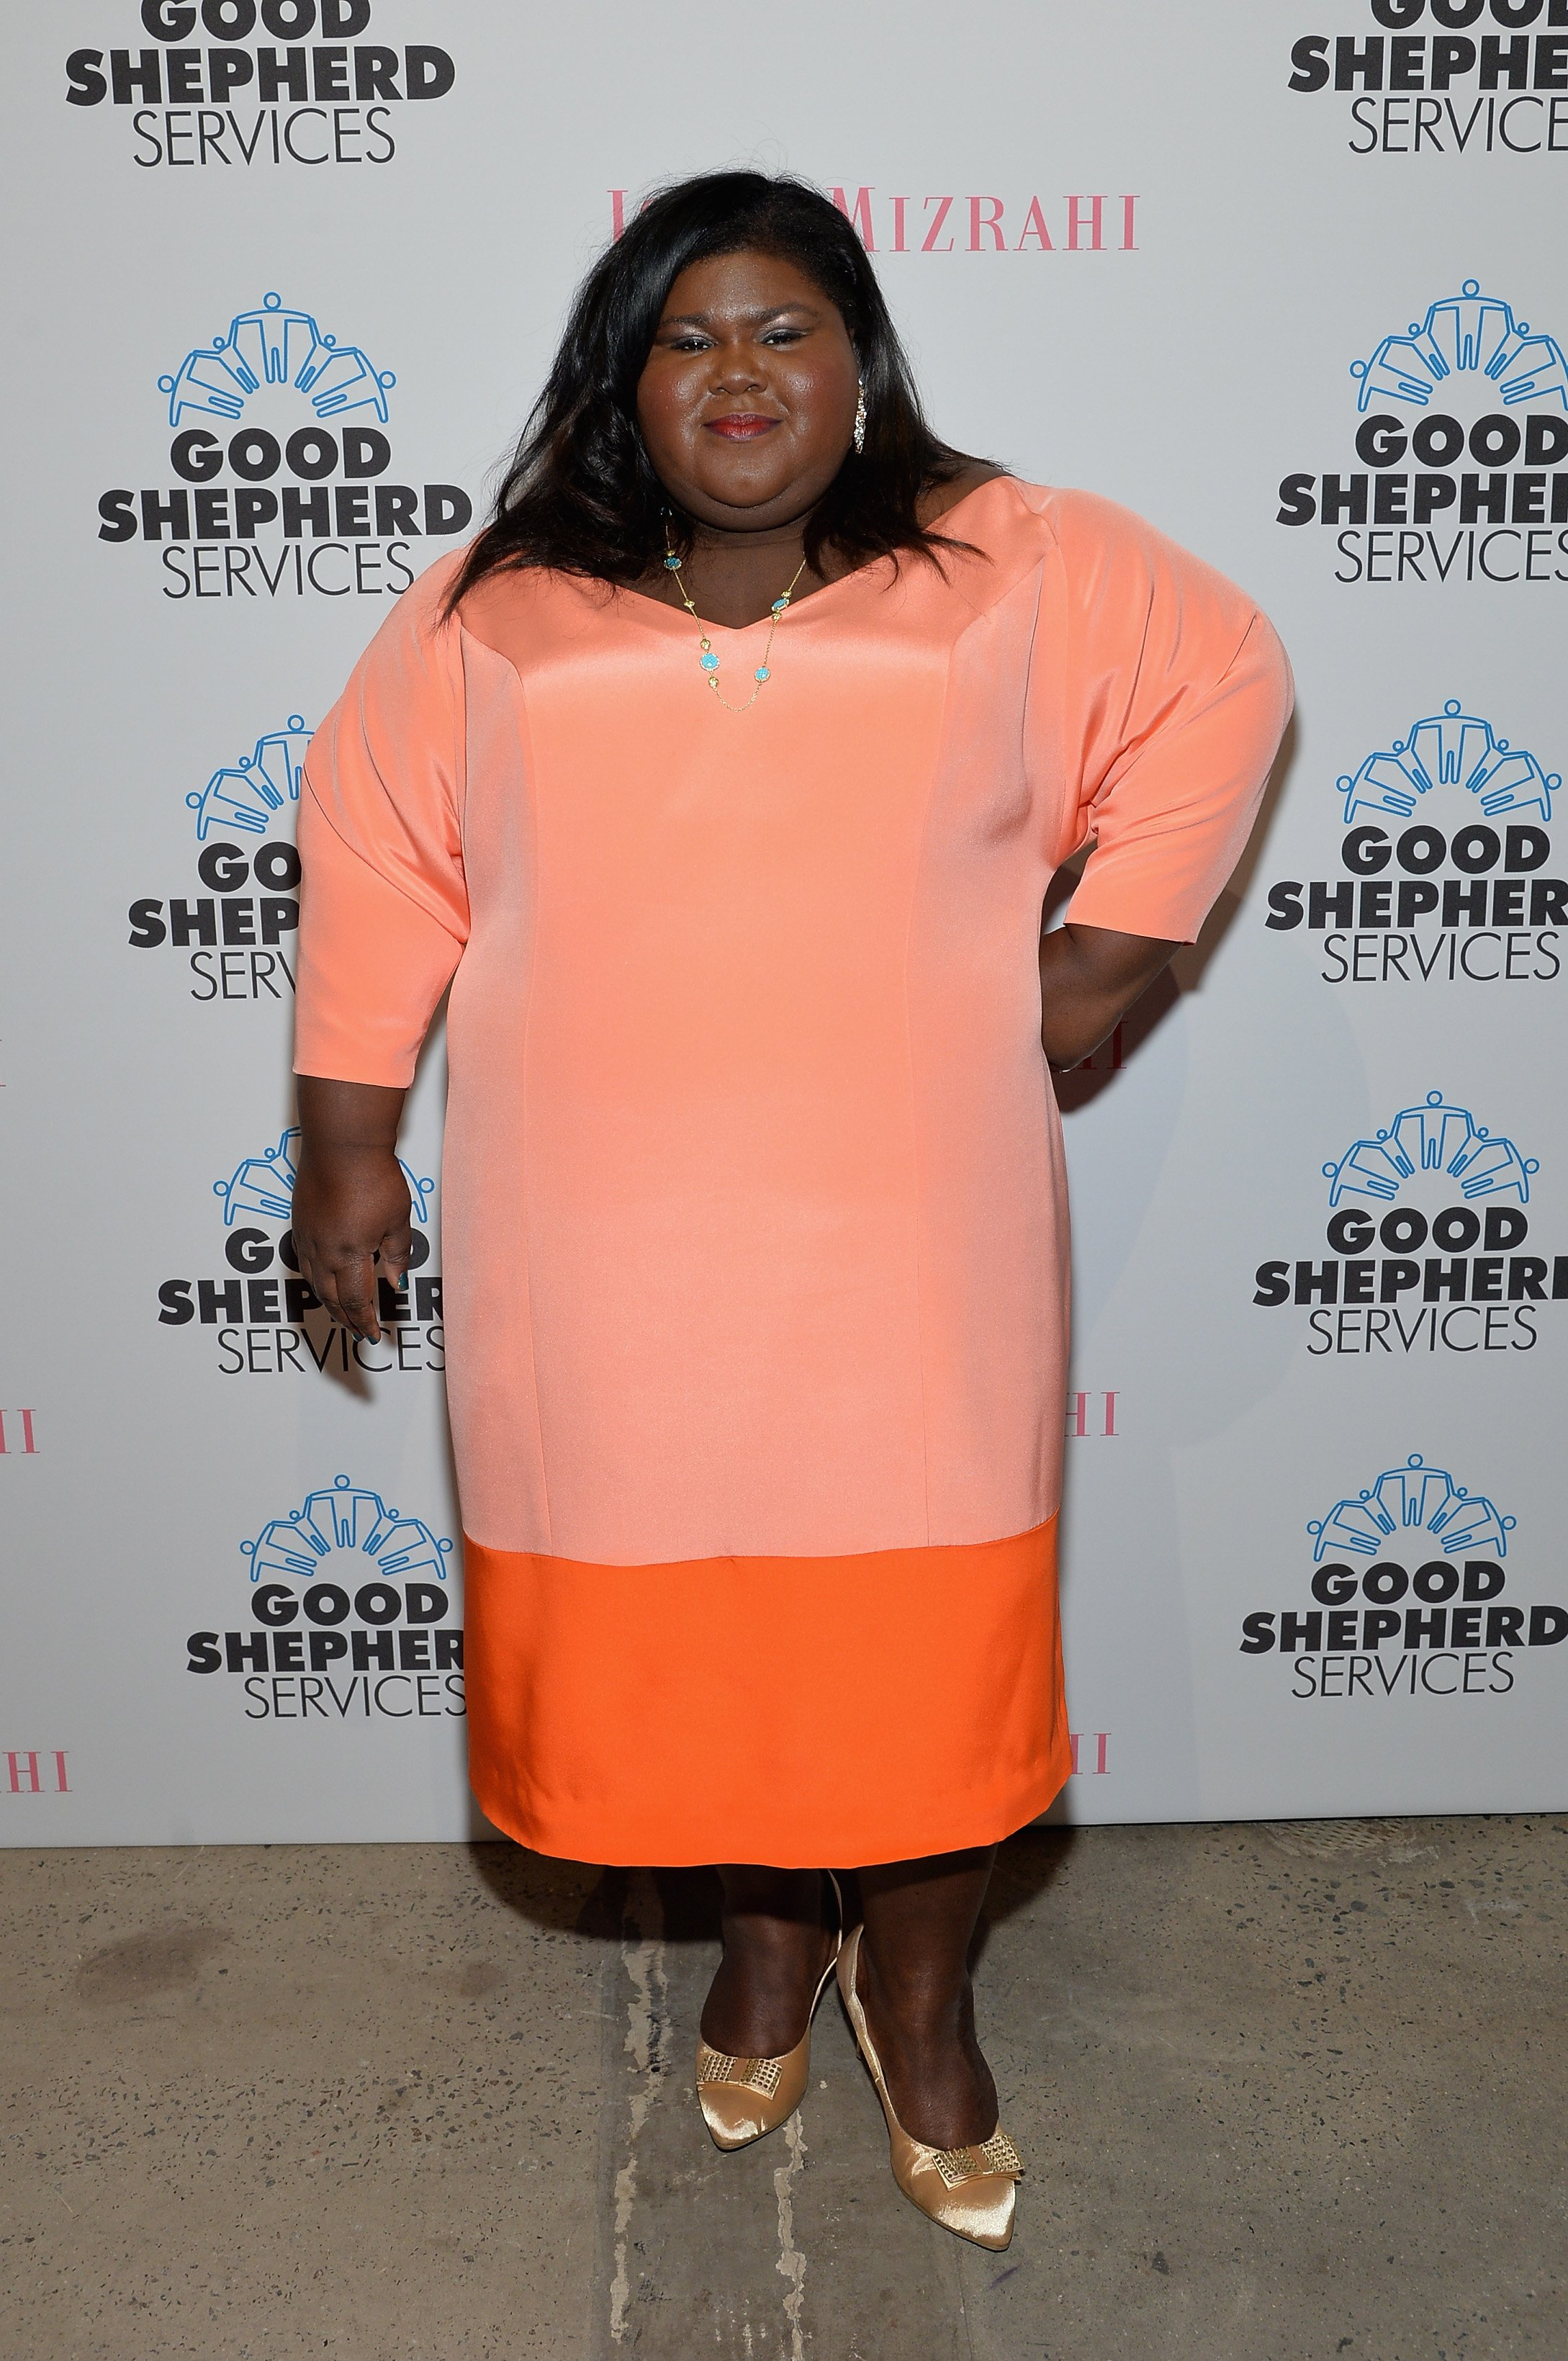 Gabourey Sidibe at the Good Shepherd Services Spring Party in New York City on April 24, 2014 | Photo: Getty Images